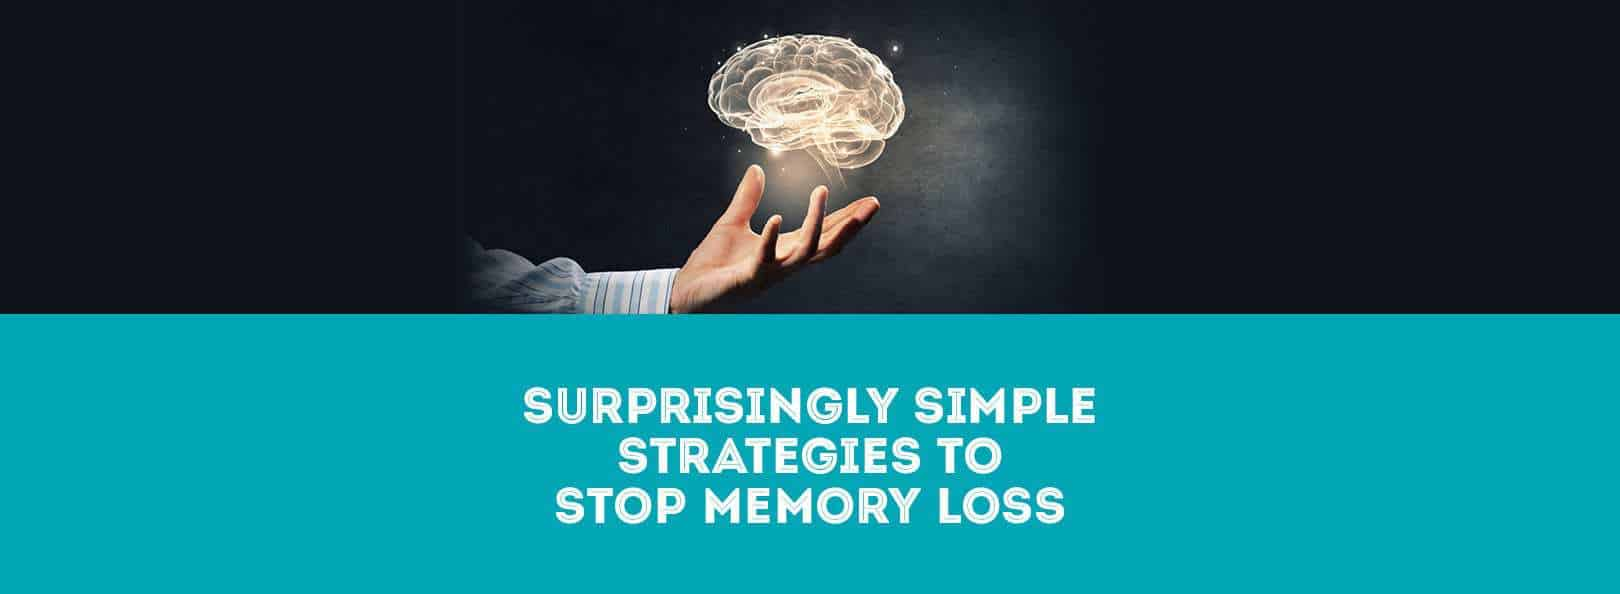 Surprisingly simple strategies to stop memory loss